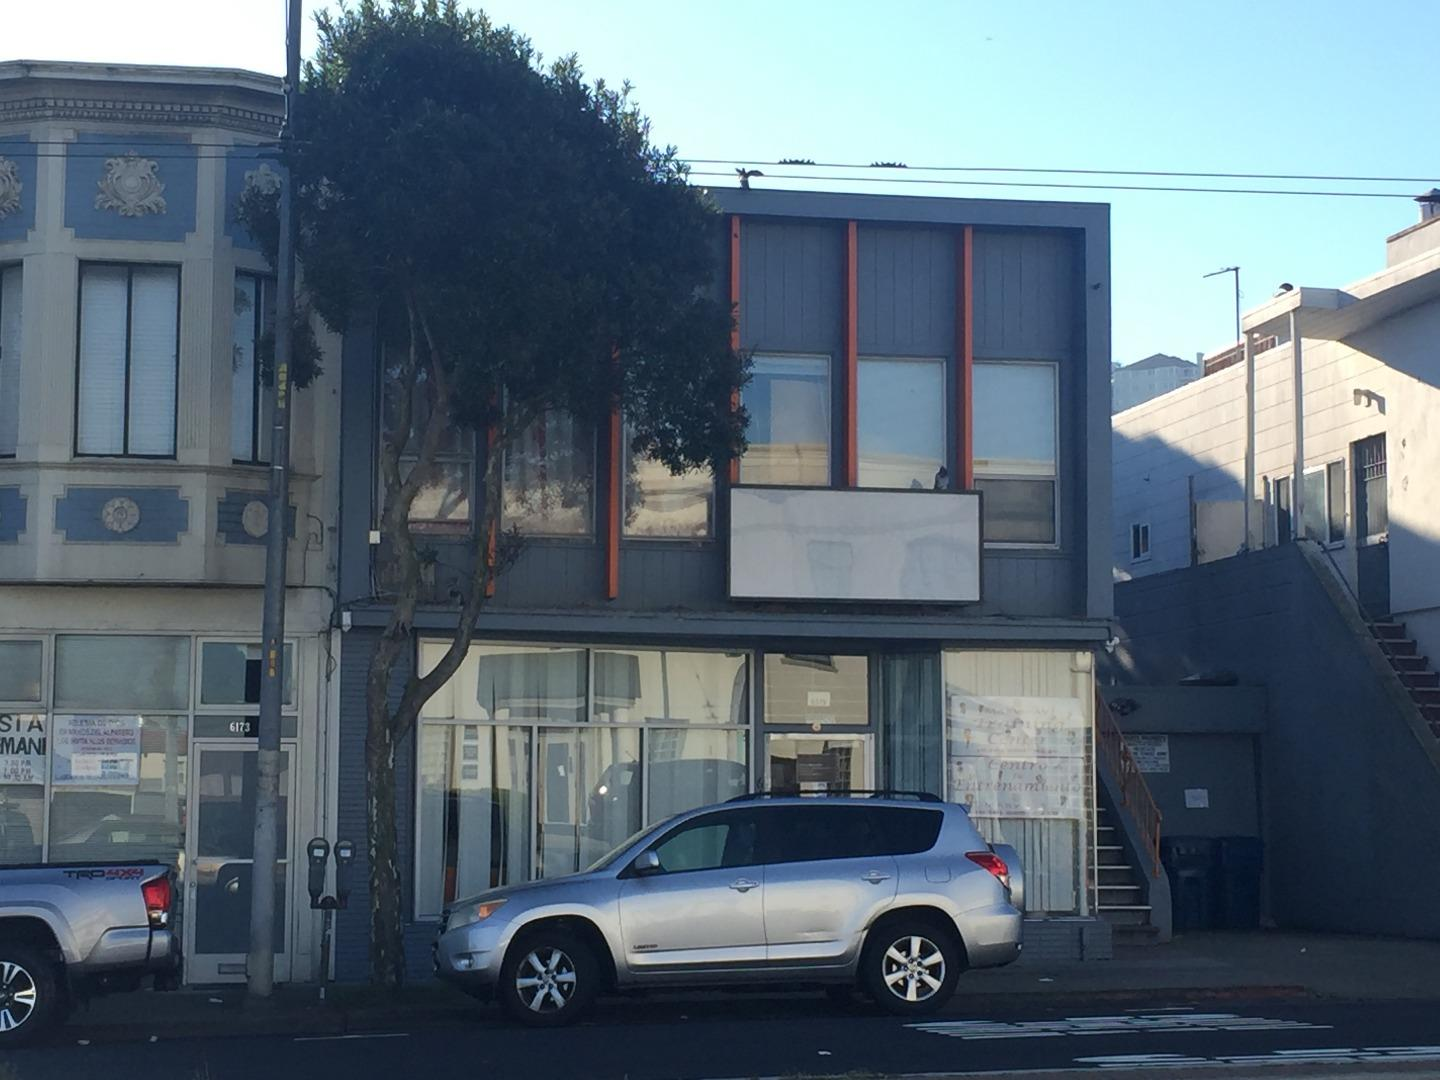 Multi-Family Home for Sale at 6175-6179 Mission Street 6175-6179 Mission Street Daly City, California 94014 United States